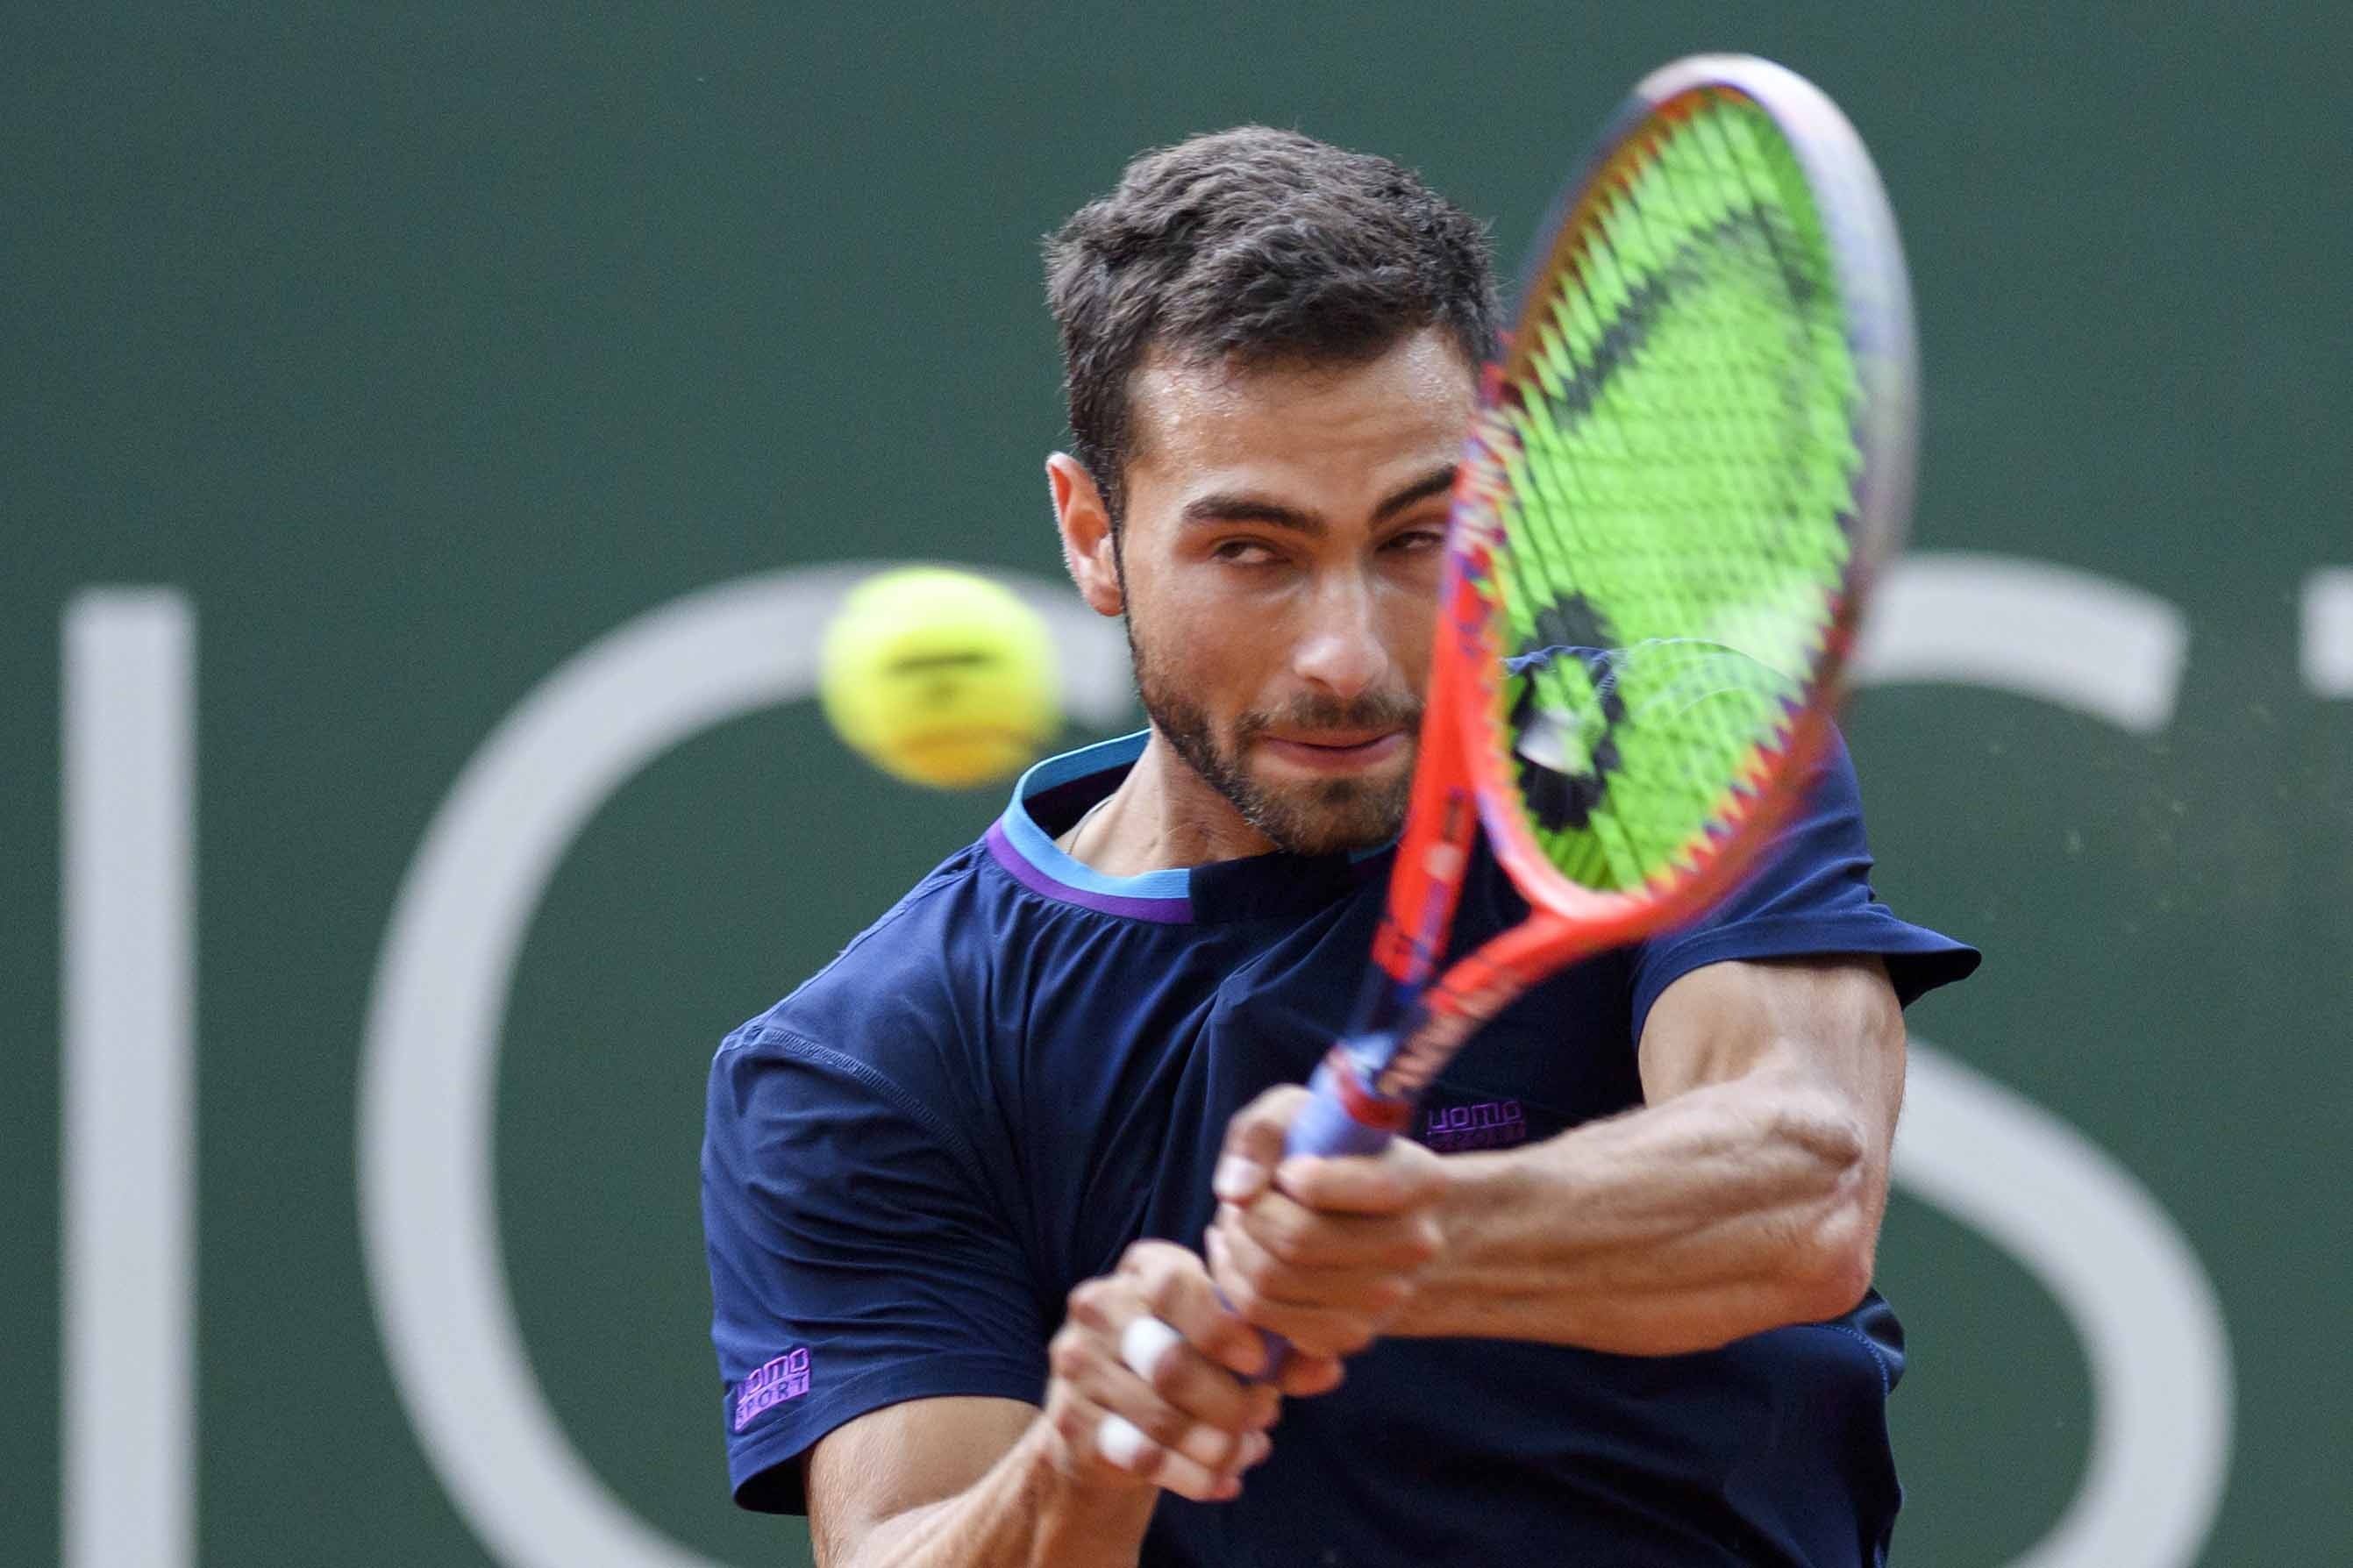 Noah Rubin of the United States returns a ball to Fabio Fognini of Italy during their second round match at the Geneva Open tournament in Geneva, Switzerland on Wednesday.